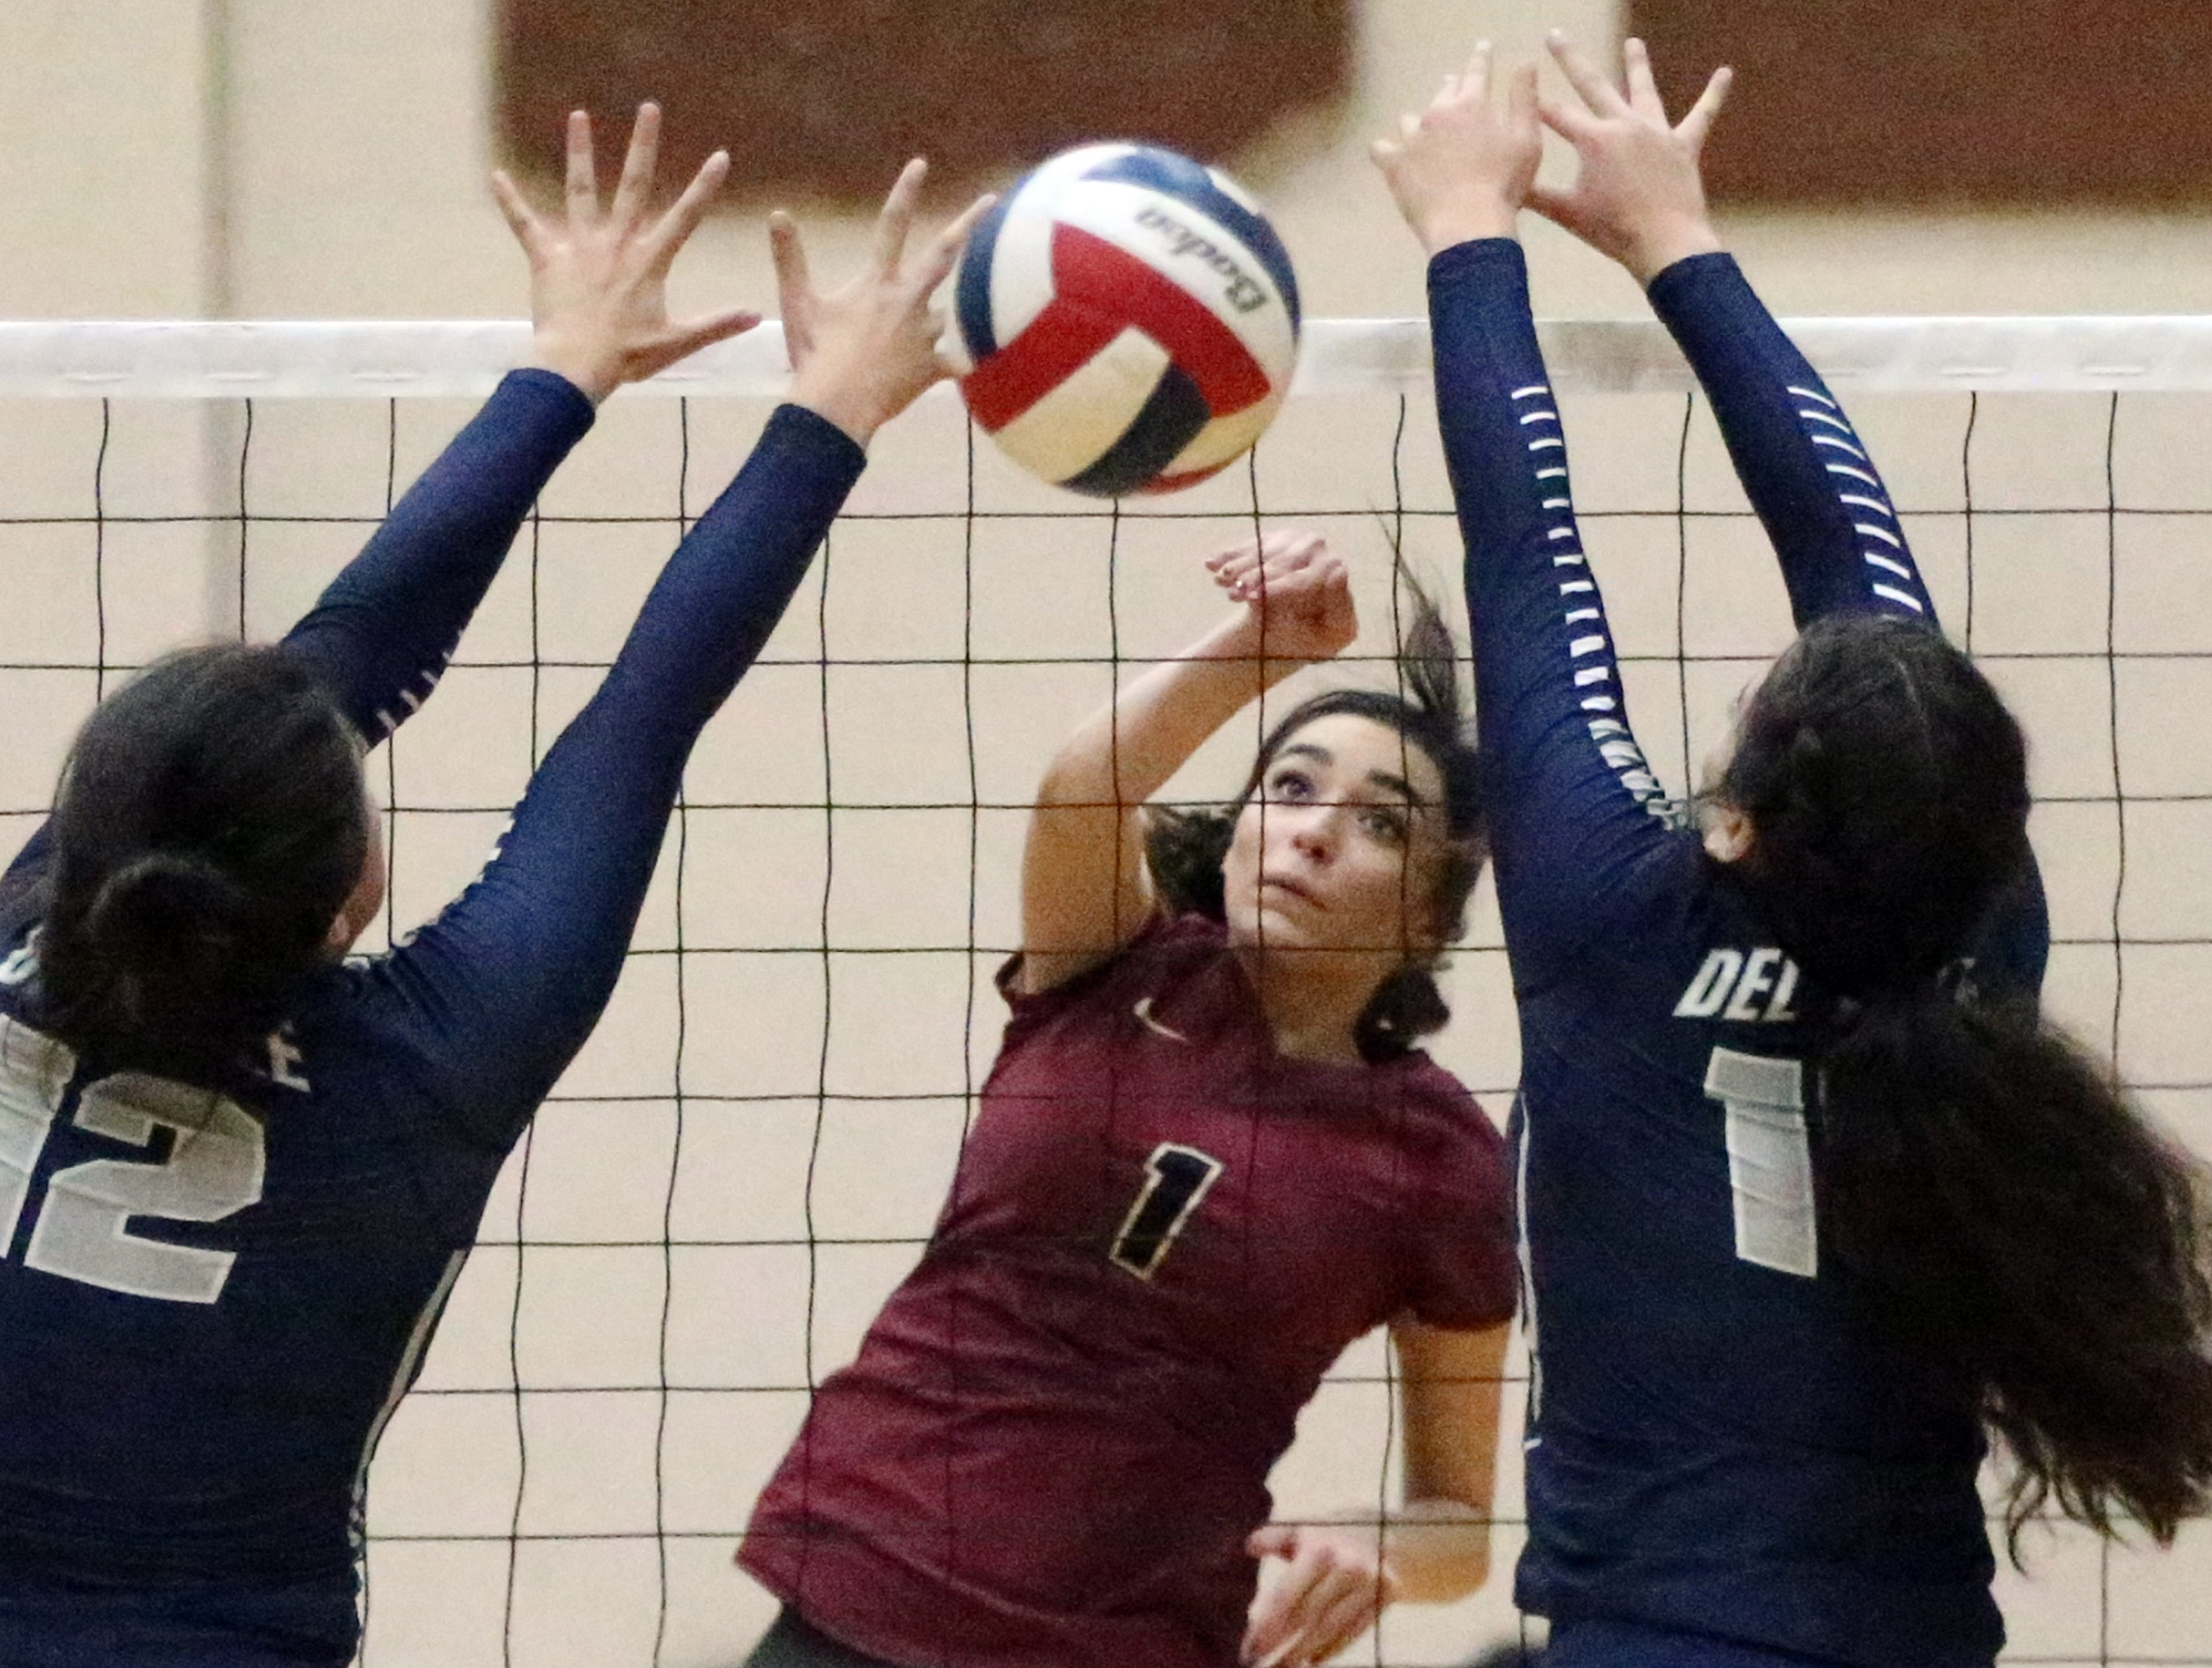 Paig Mcgriff, 1, of El Dorado fires past Del Valle's Madison Valverde, 12, and Natalie Murillo, 15, Tuesday, Sept. 18 at Del Valle. El Dorado won the contest in three sets.